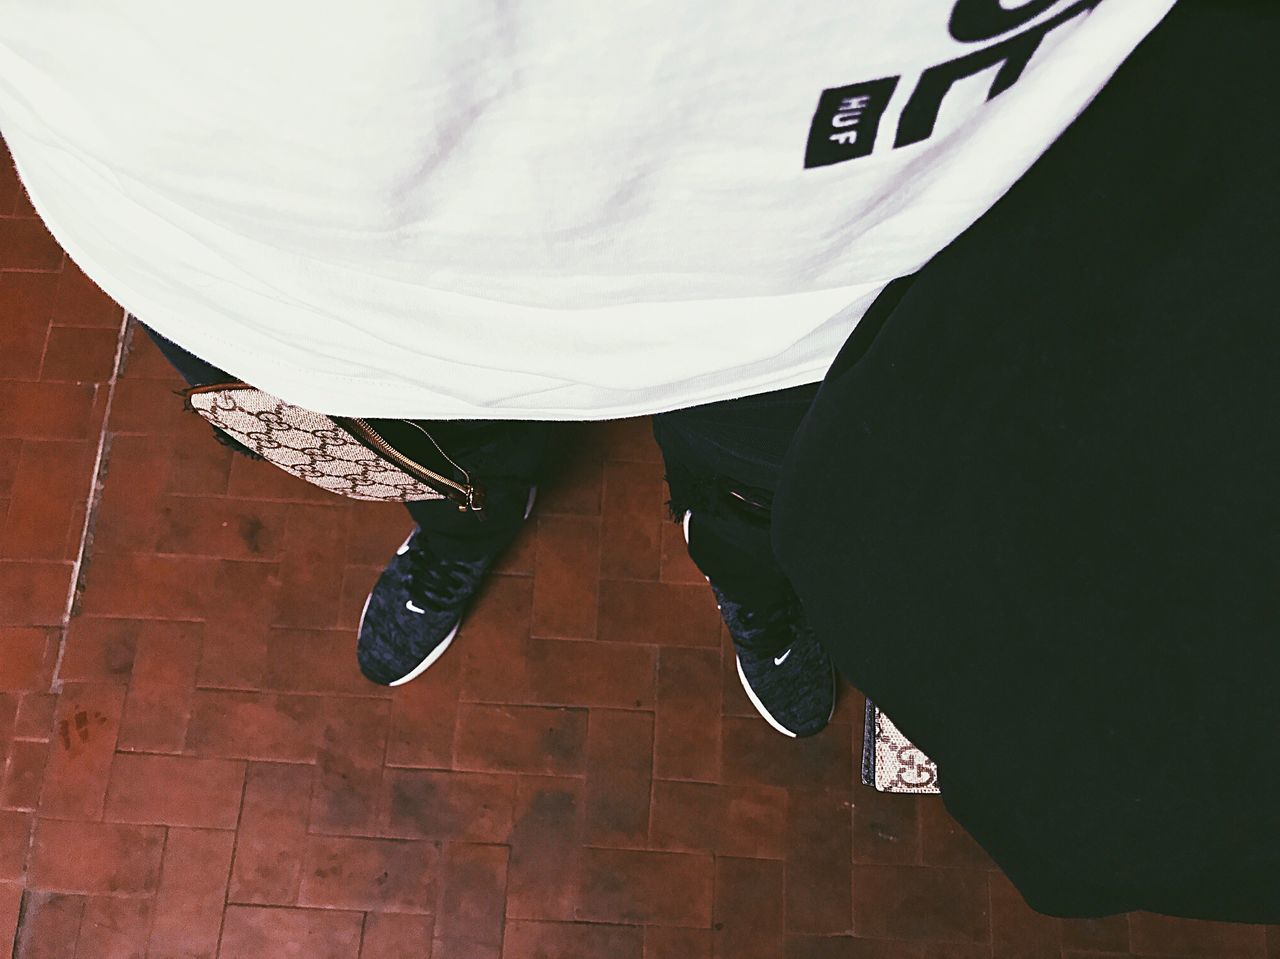 GUCCI Lifestyles Style Huf Nightphotography Light And Shadow Tee Portrait Light Nike Shoes Legs Pants Clothes